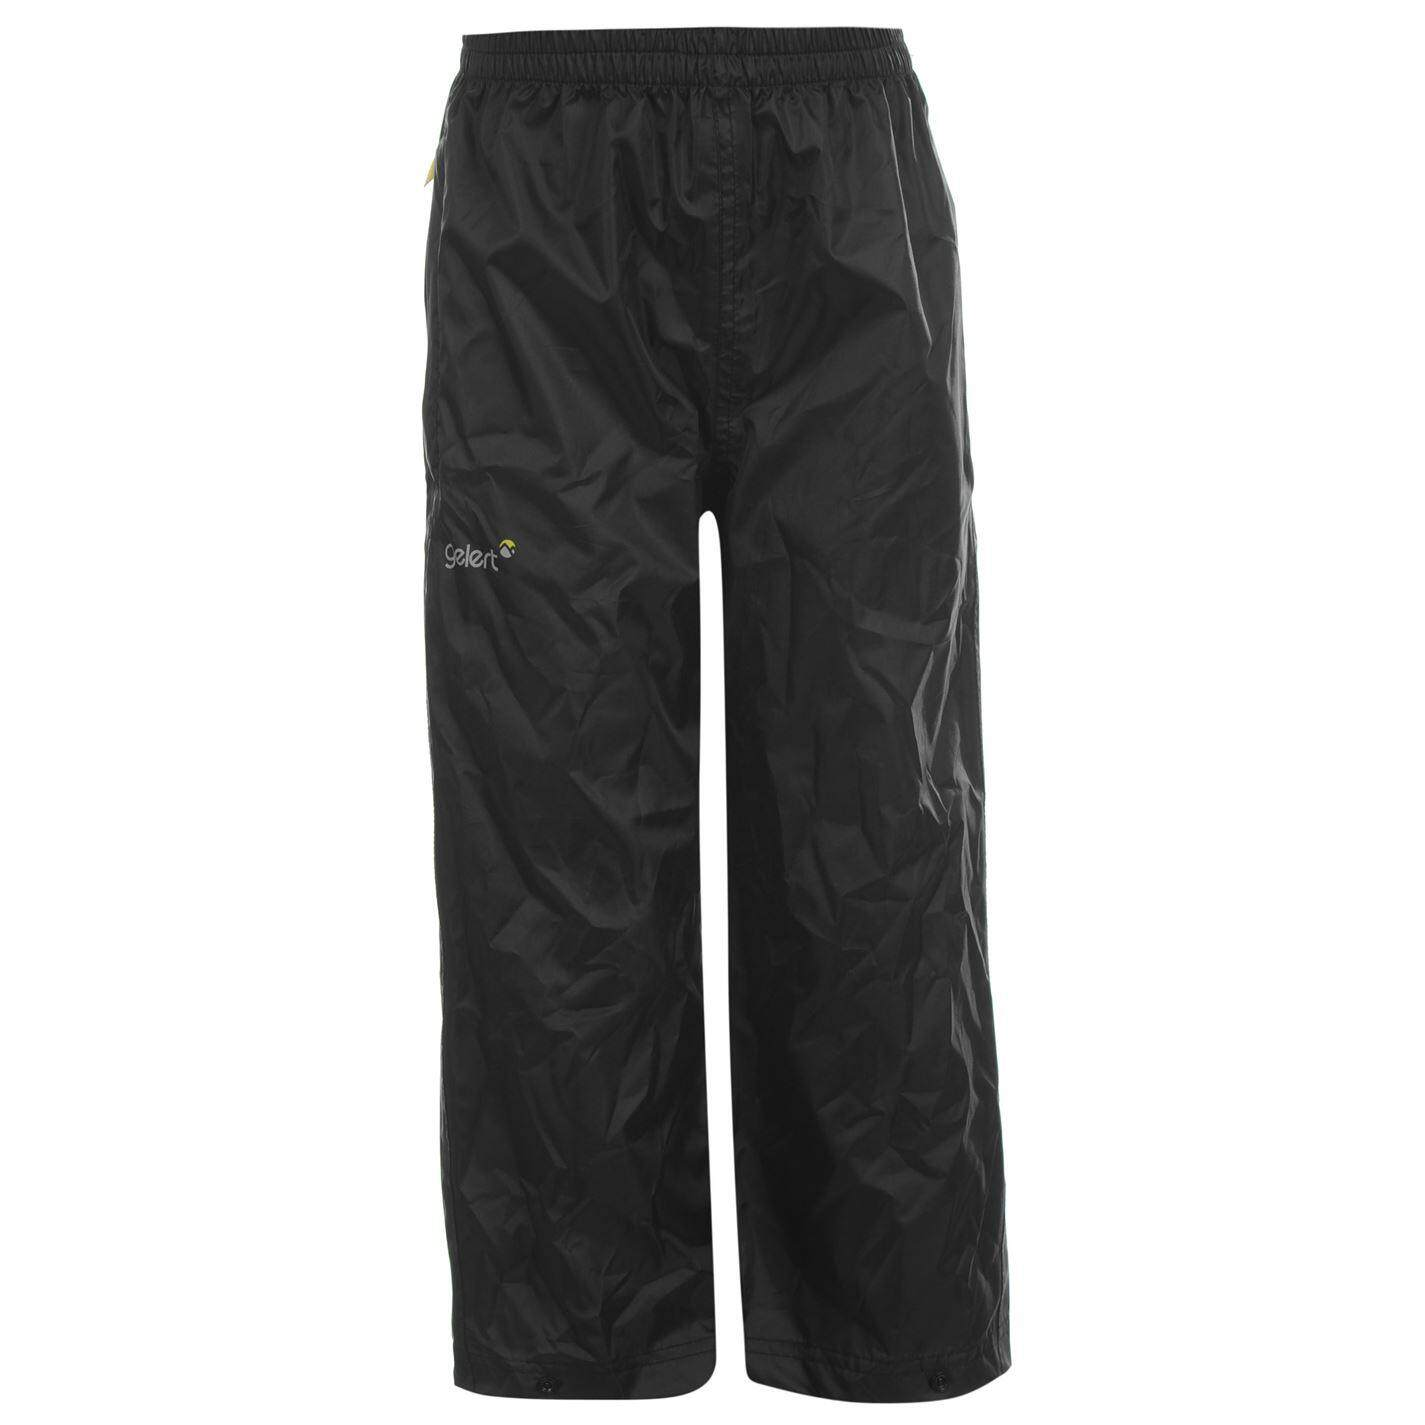 Gelert Kids Boys Packaway Trousers Infants (black) By Sports Direct Mst Sdn Bhd.